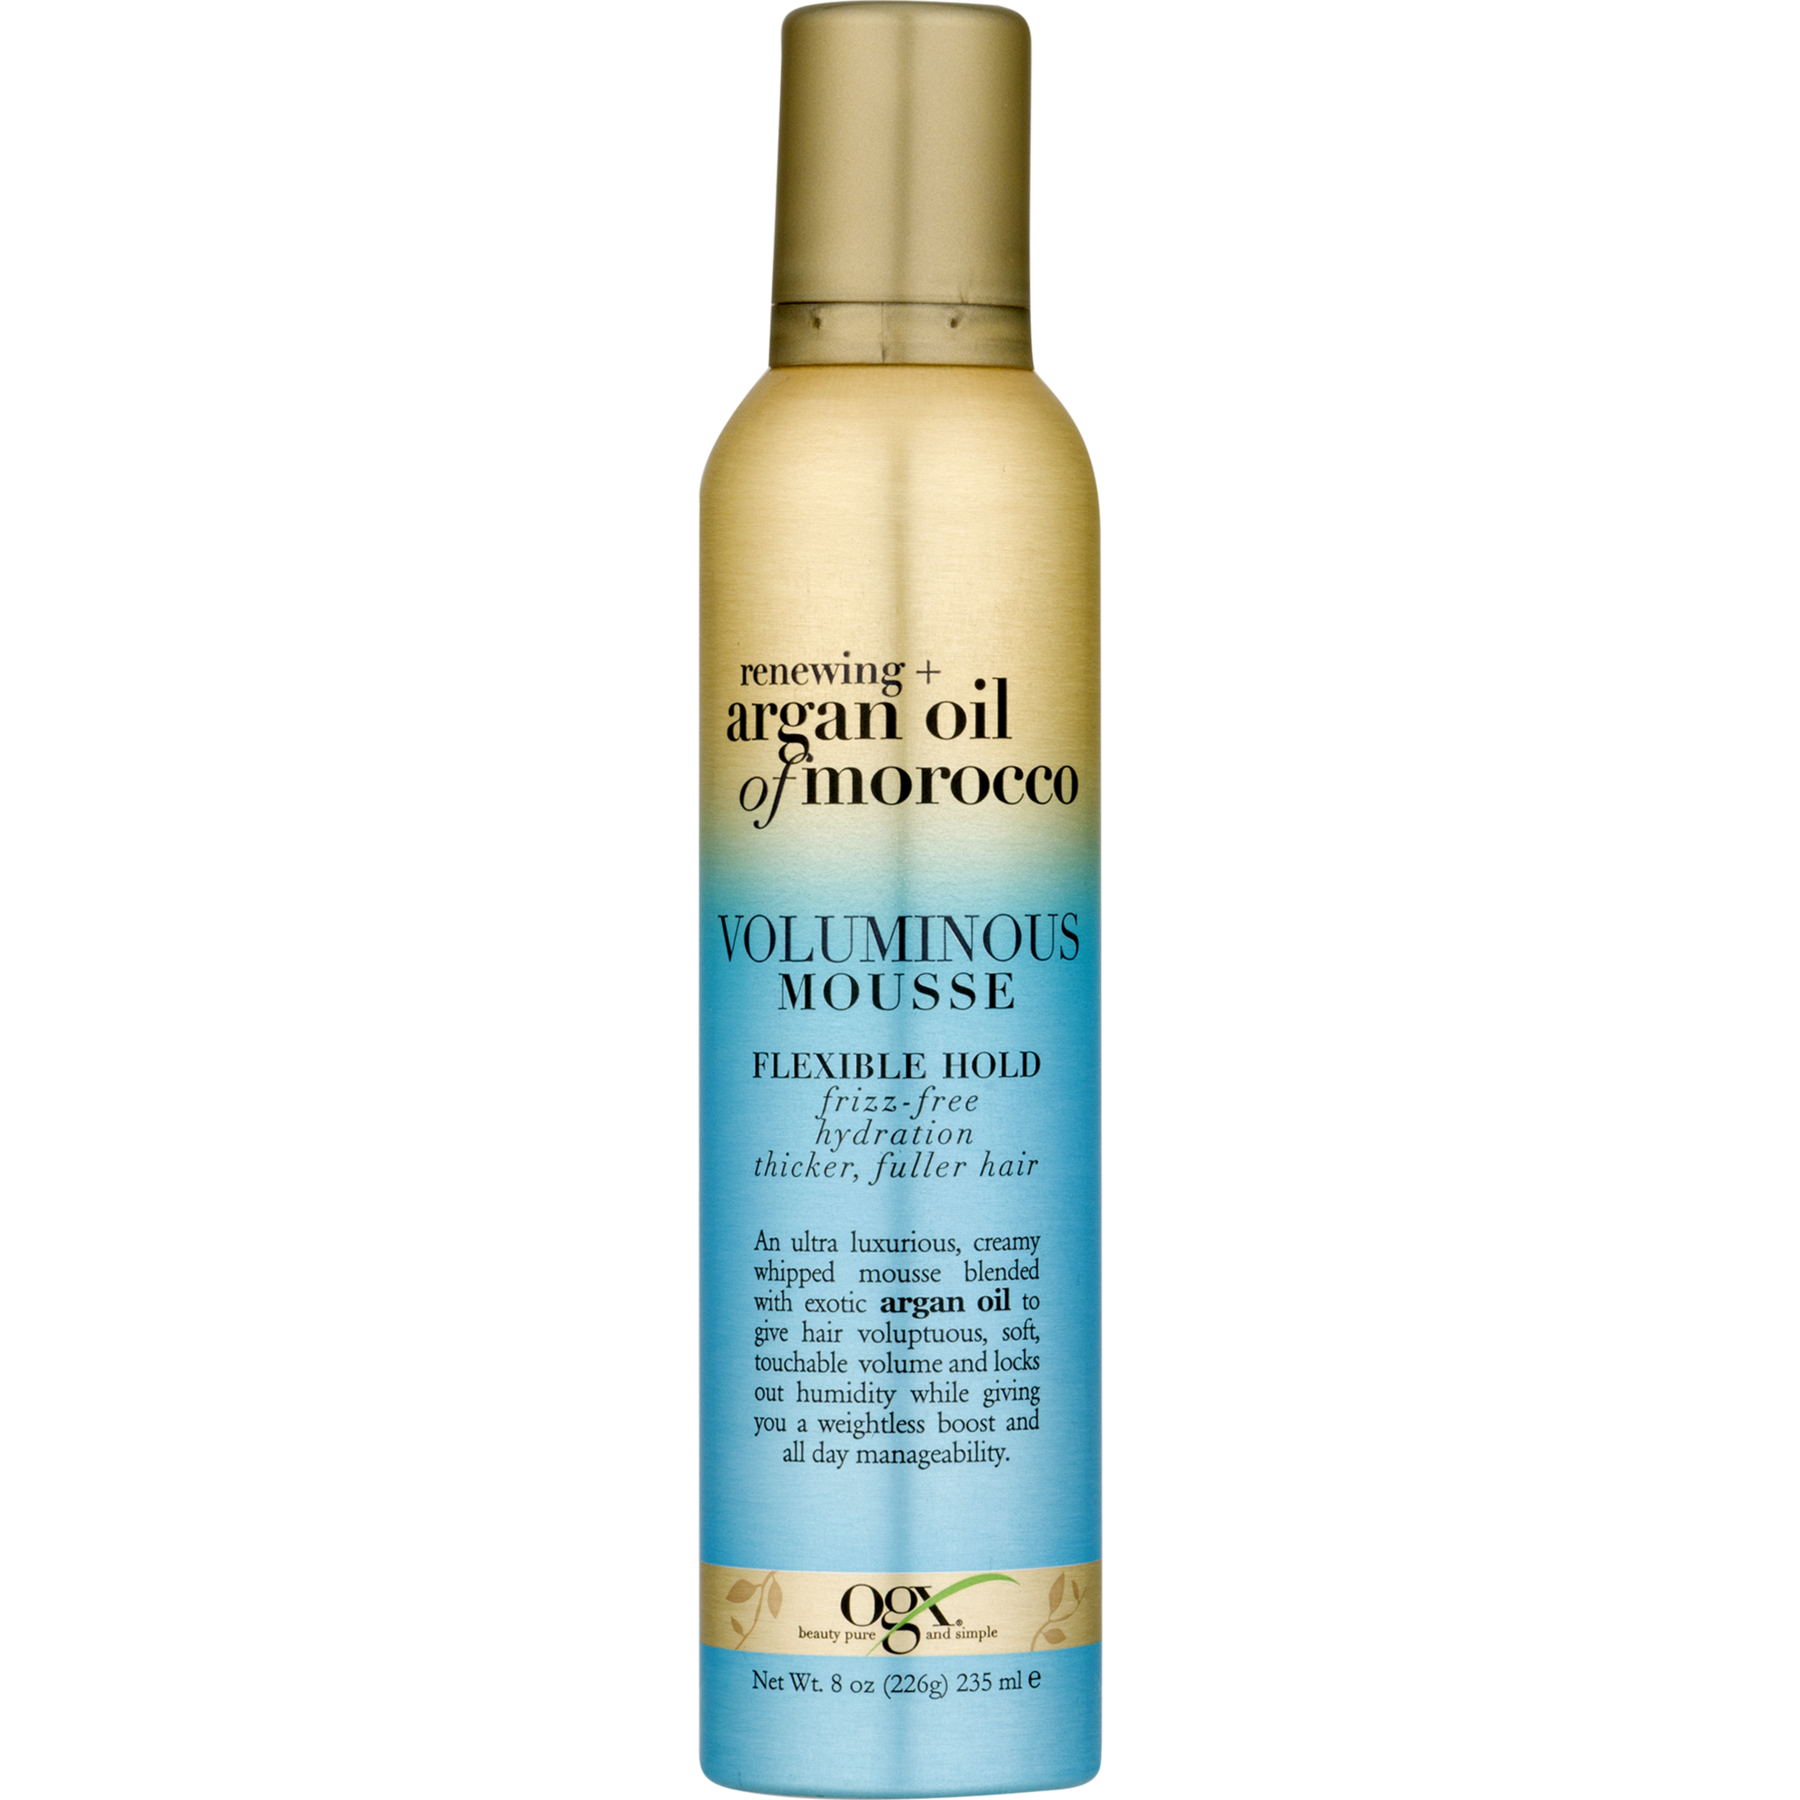 Ogx Renewing Argan Oil of Morocco Voluminous Mousse 8 oz. Pump